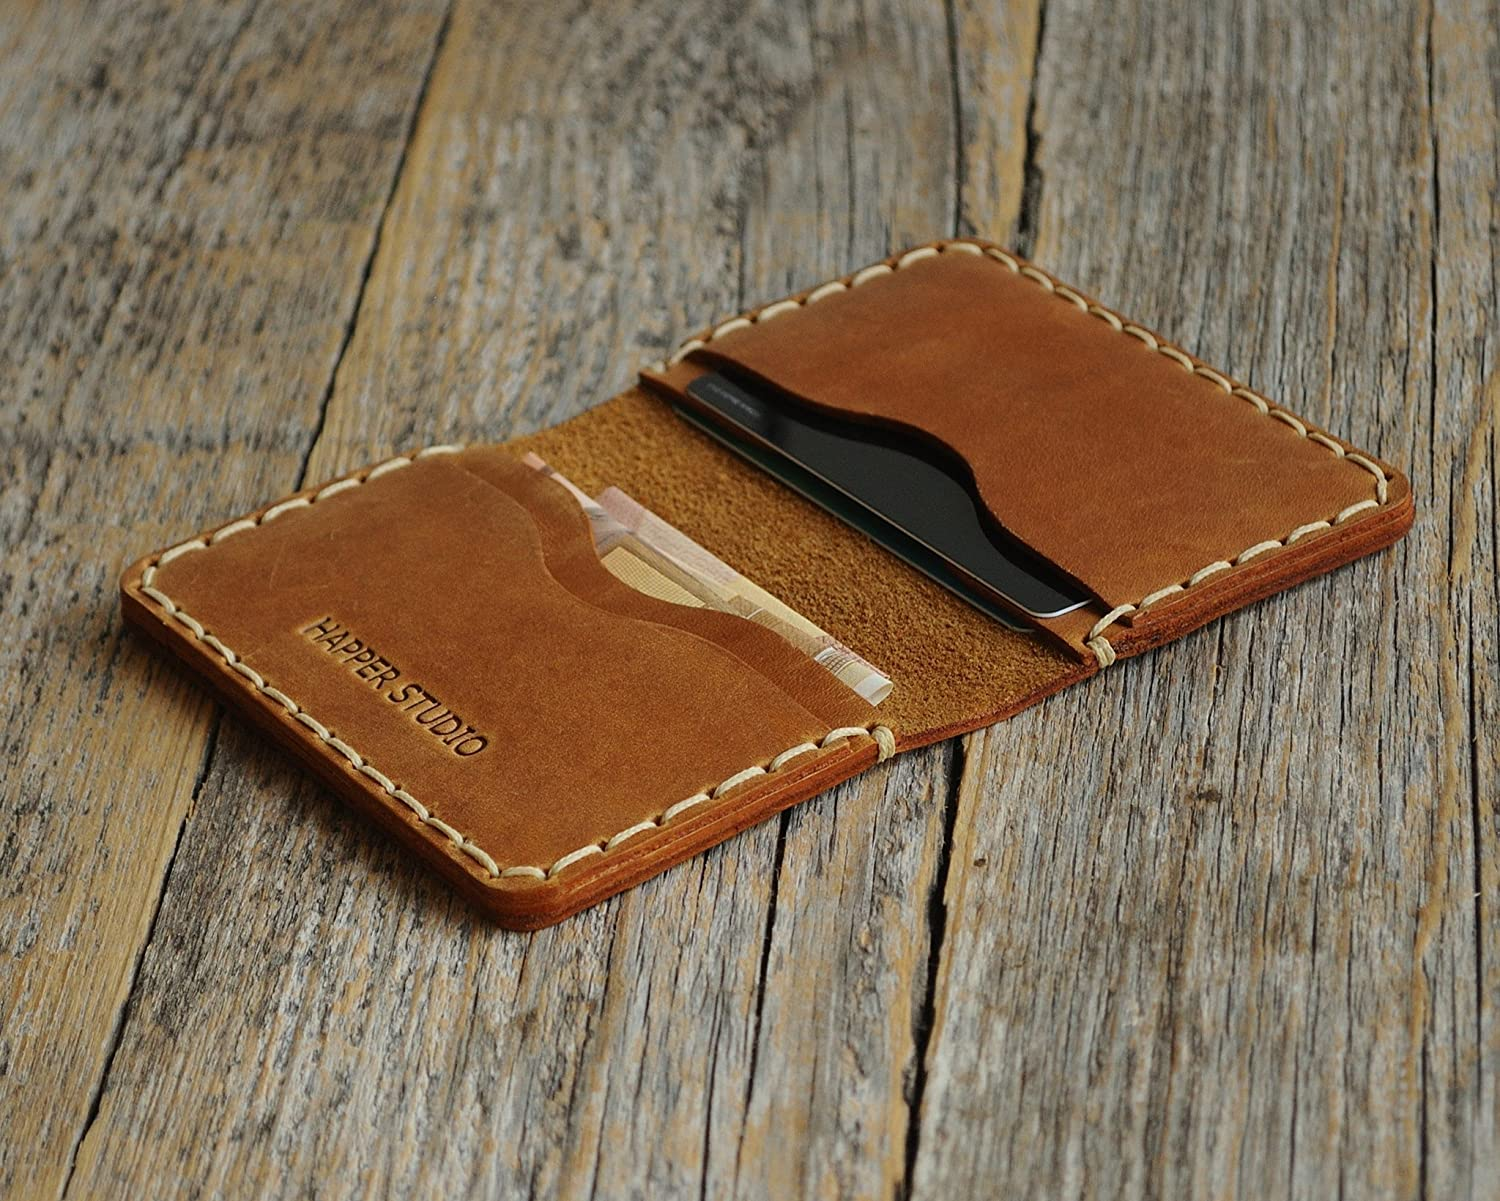 Personalised Leather Wallet. Tan Brown Credit Card, Cash or ID Holder. Rustic Style Unisex Pouch. Monogram your Name or Initials